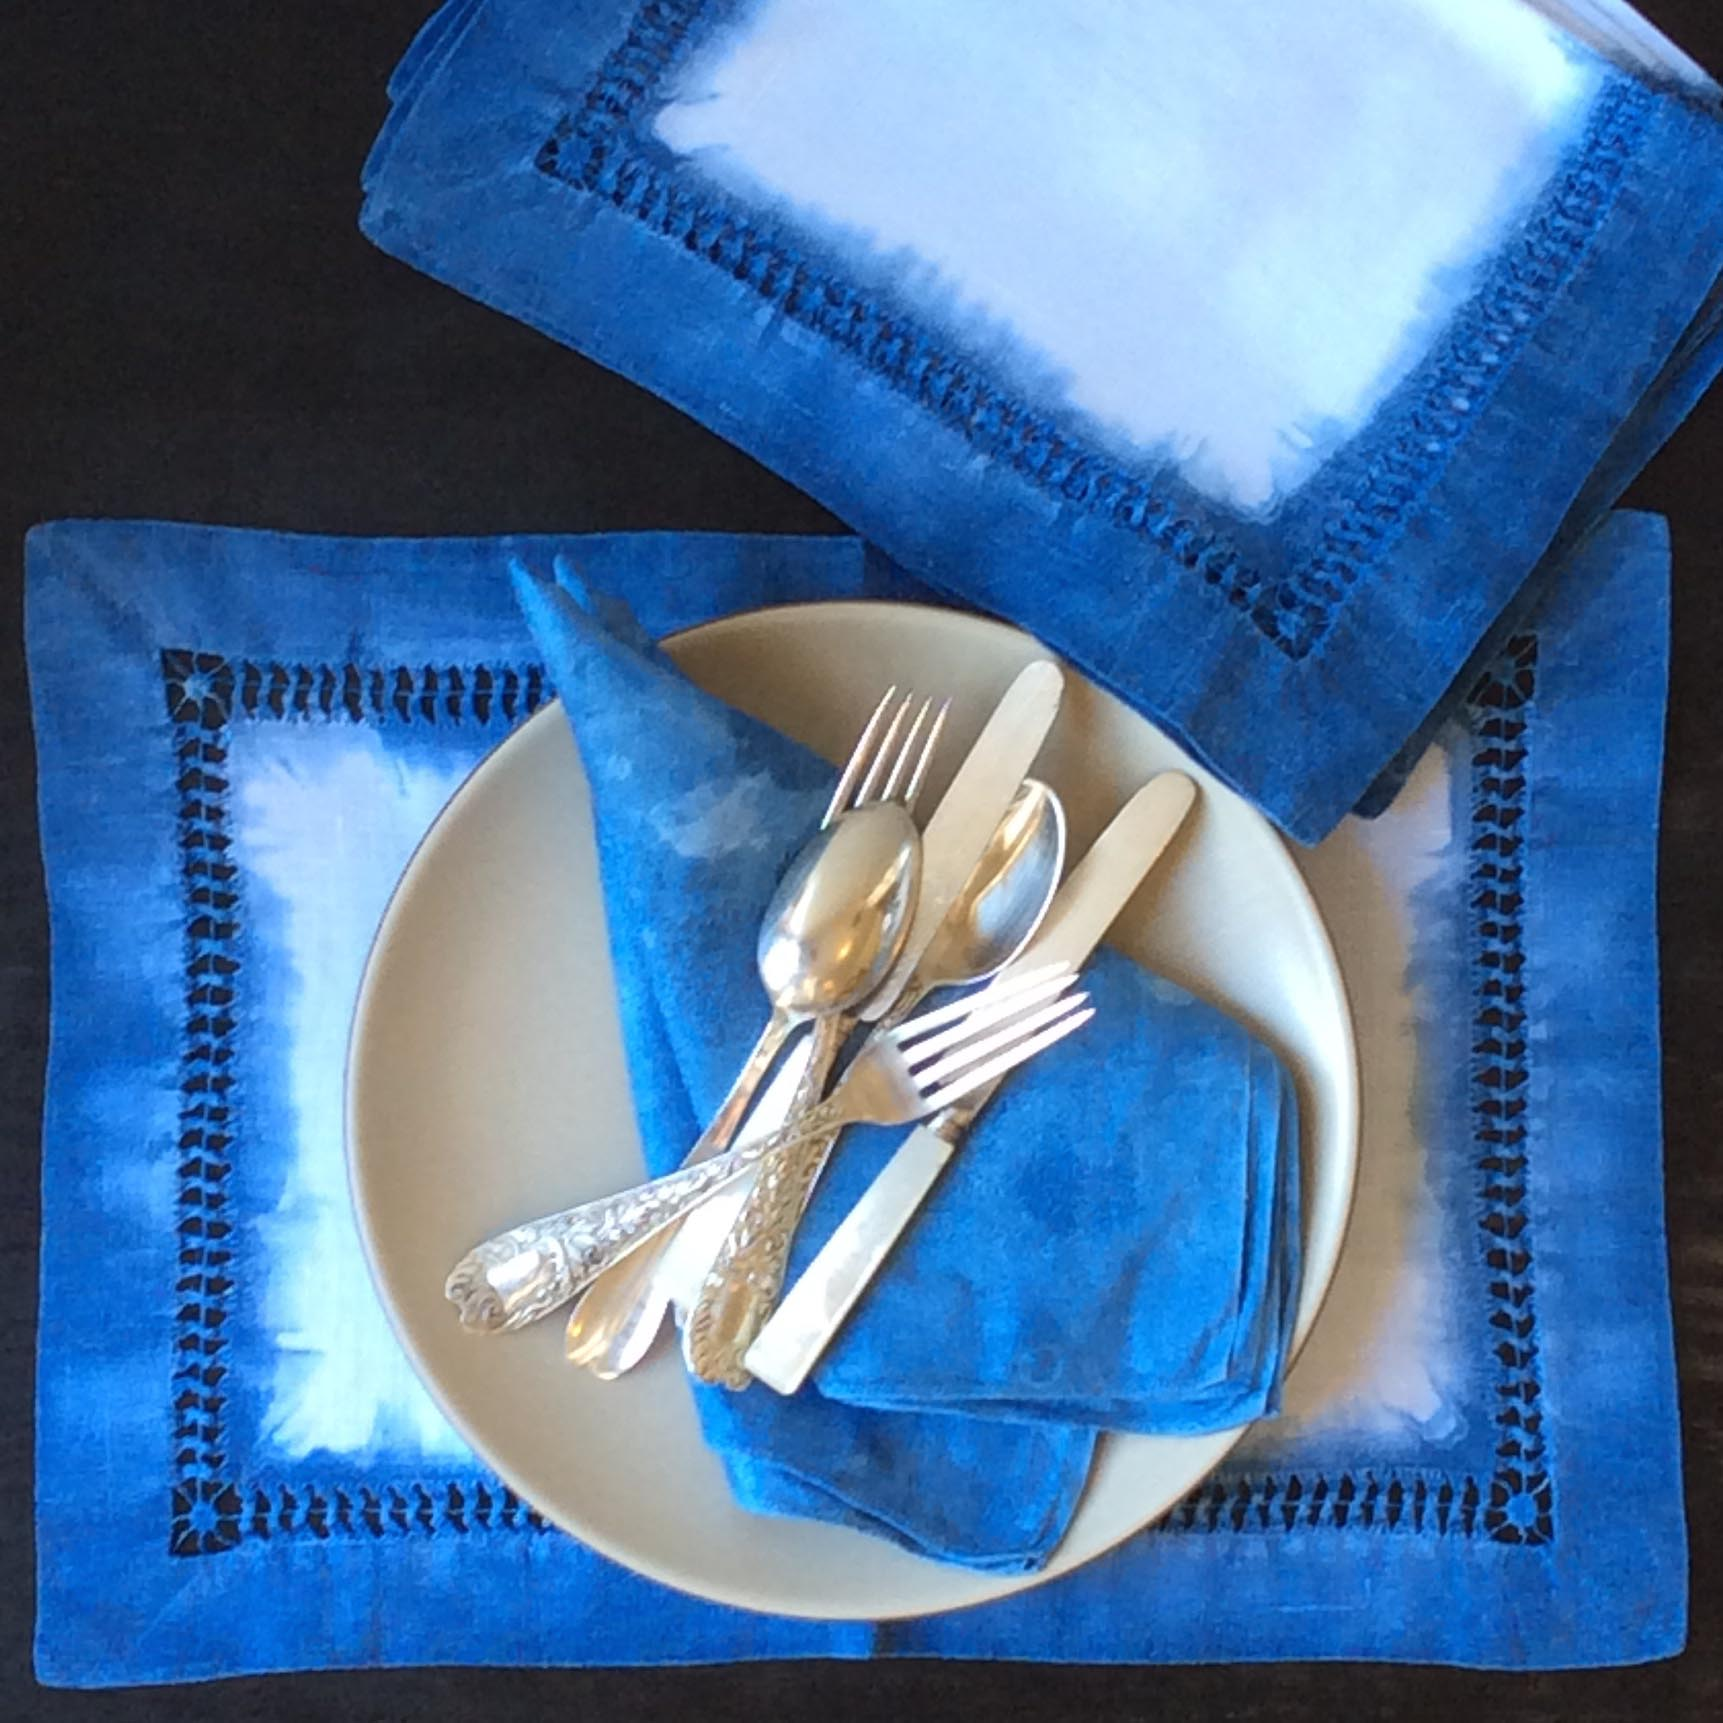 Estate sale finds given a new life: a lovely fat hemstitched placemat set and some jacquard linen napkins, all after 24 hours in the blue.